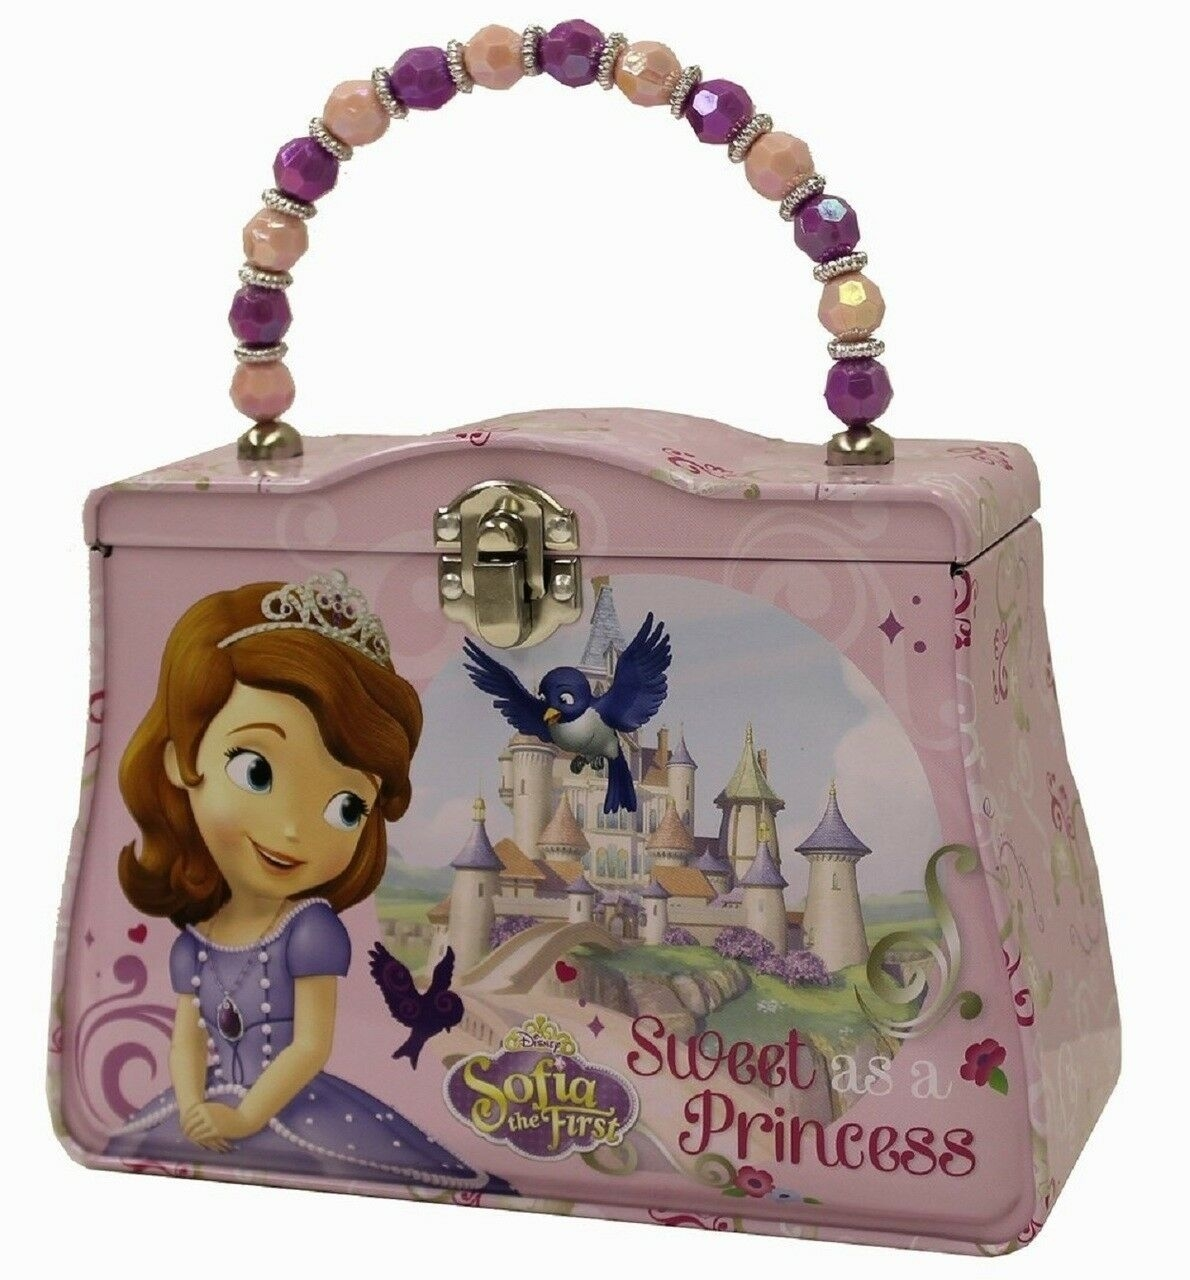 Princess Sofia the First Tin Beaded Purse - Sweet as a Princess (078678620103) photo